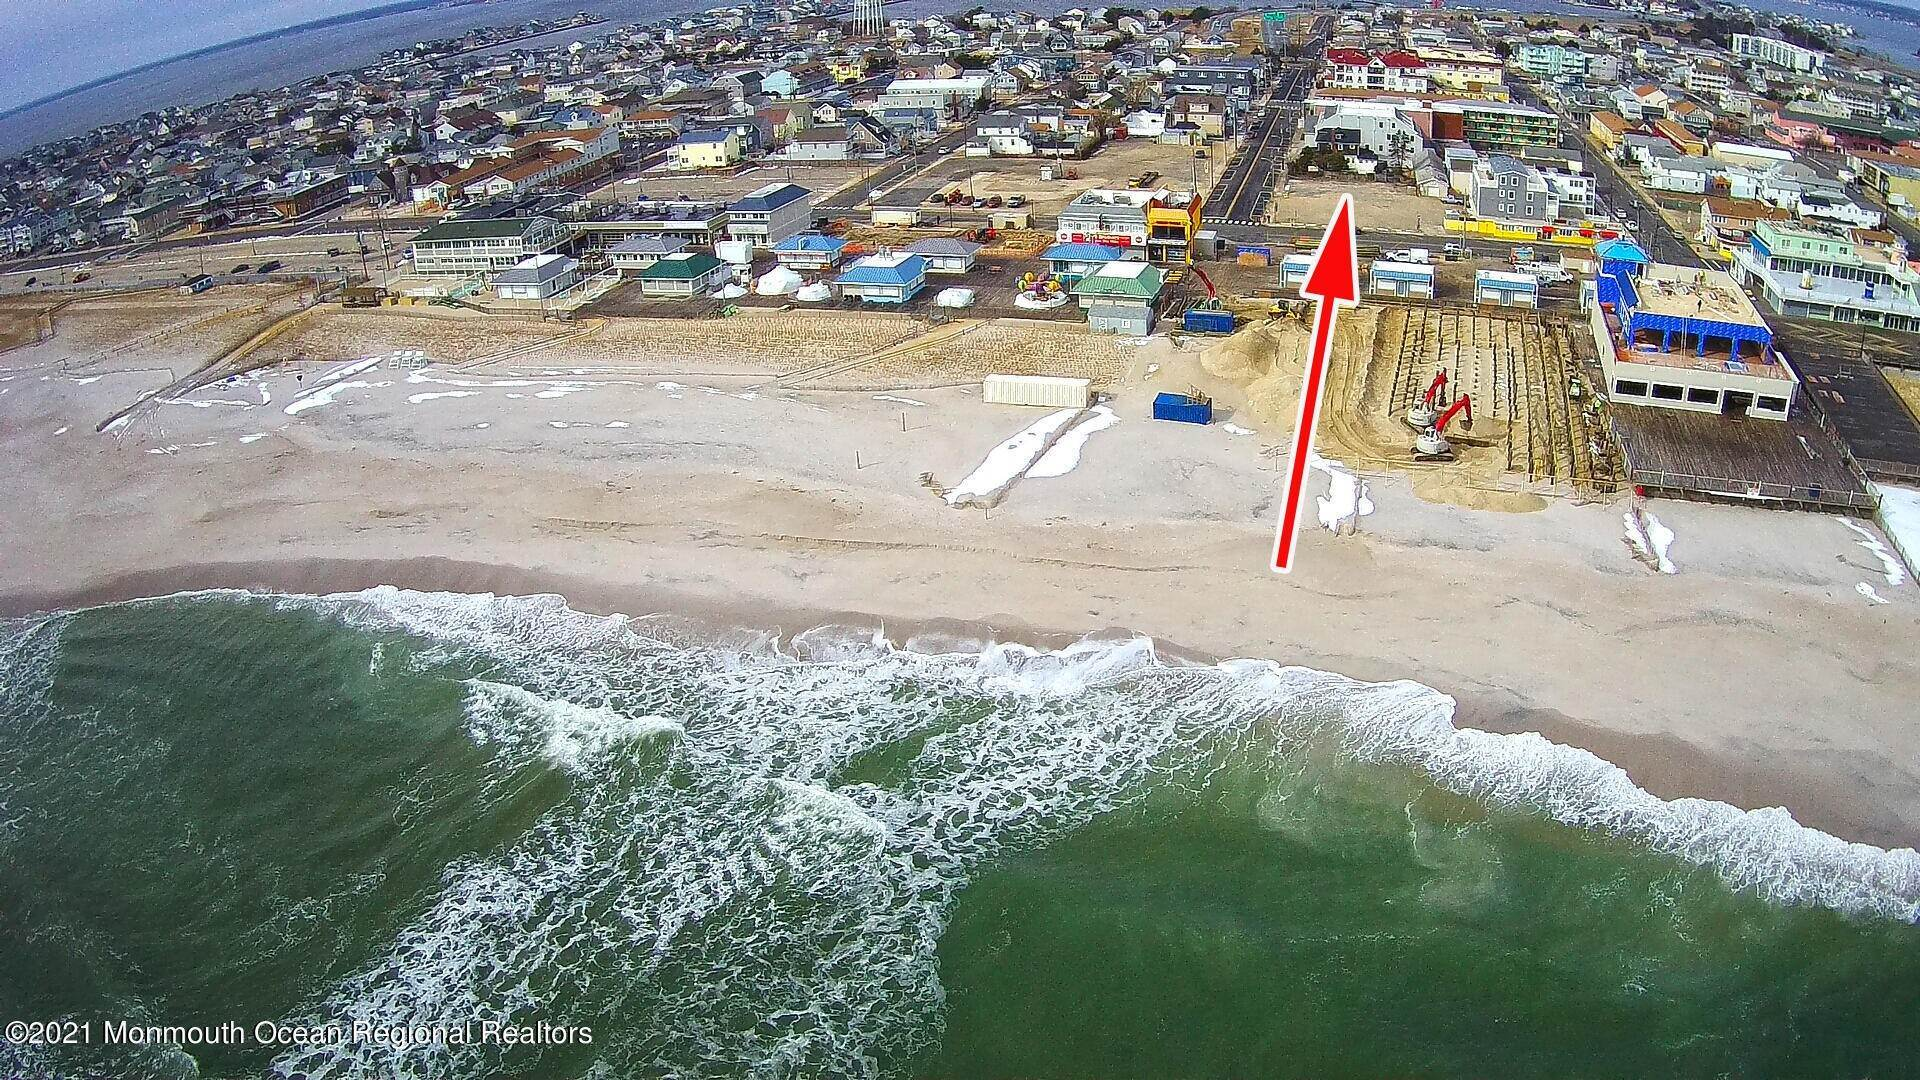 Property for Sale at 9 Ocean Terrace Seaside Heights, New Jersey 08751 United States